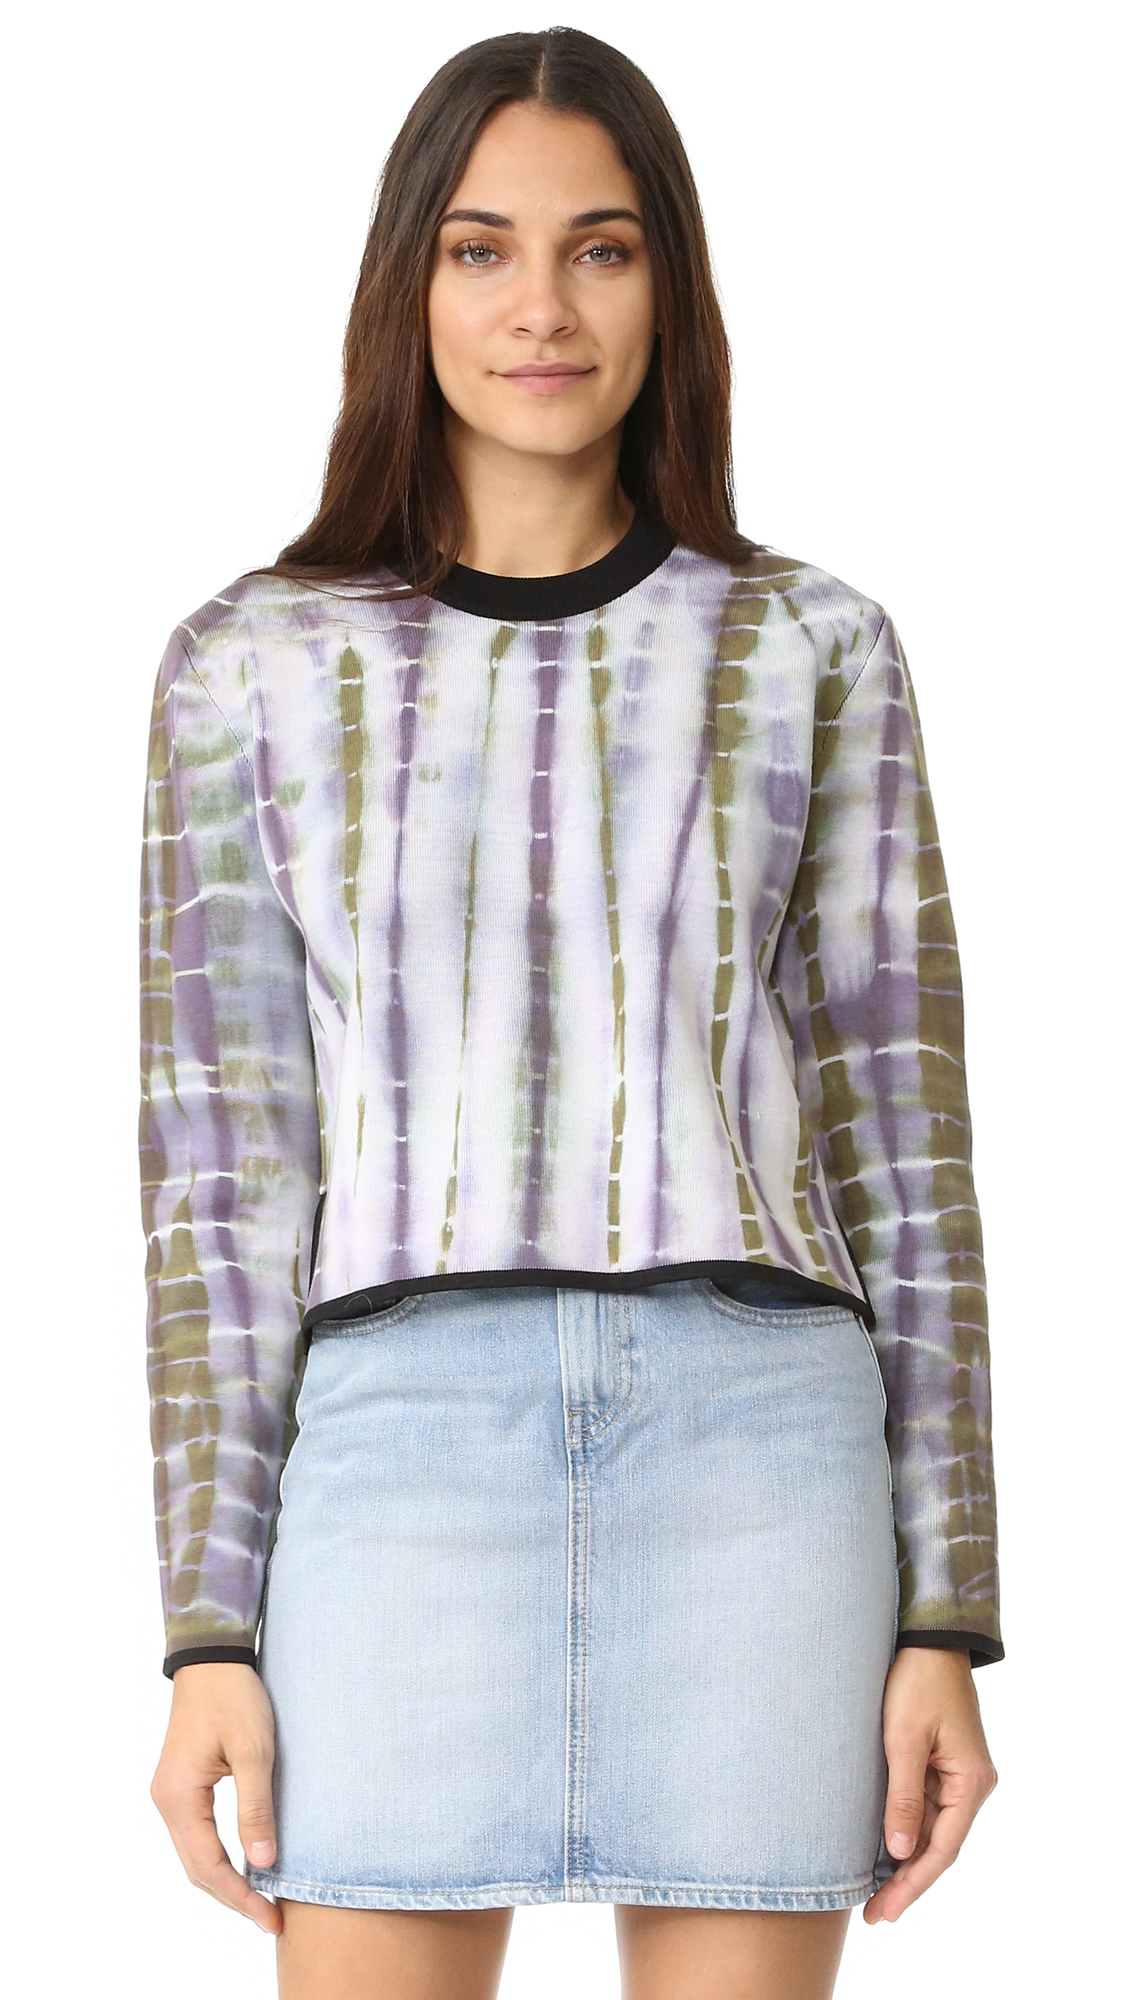 A tie dye Acne Studios sweater in a loose silhouette. Split hem. Contrast edges. Long sleeves. Fabric: Double knit. 55% cotton/45% nylon. Hand wash or dry clean. Imported, China. Measurements Length: 19.75in / 50cm, from shoulder Measurements from